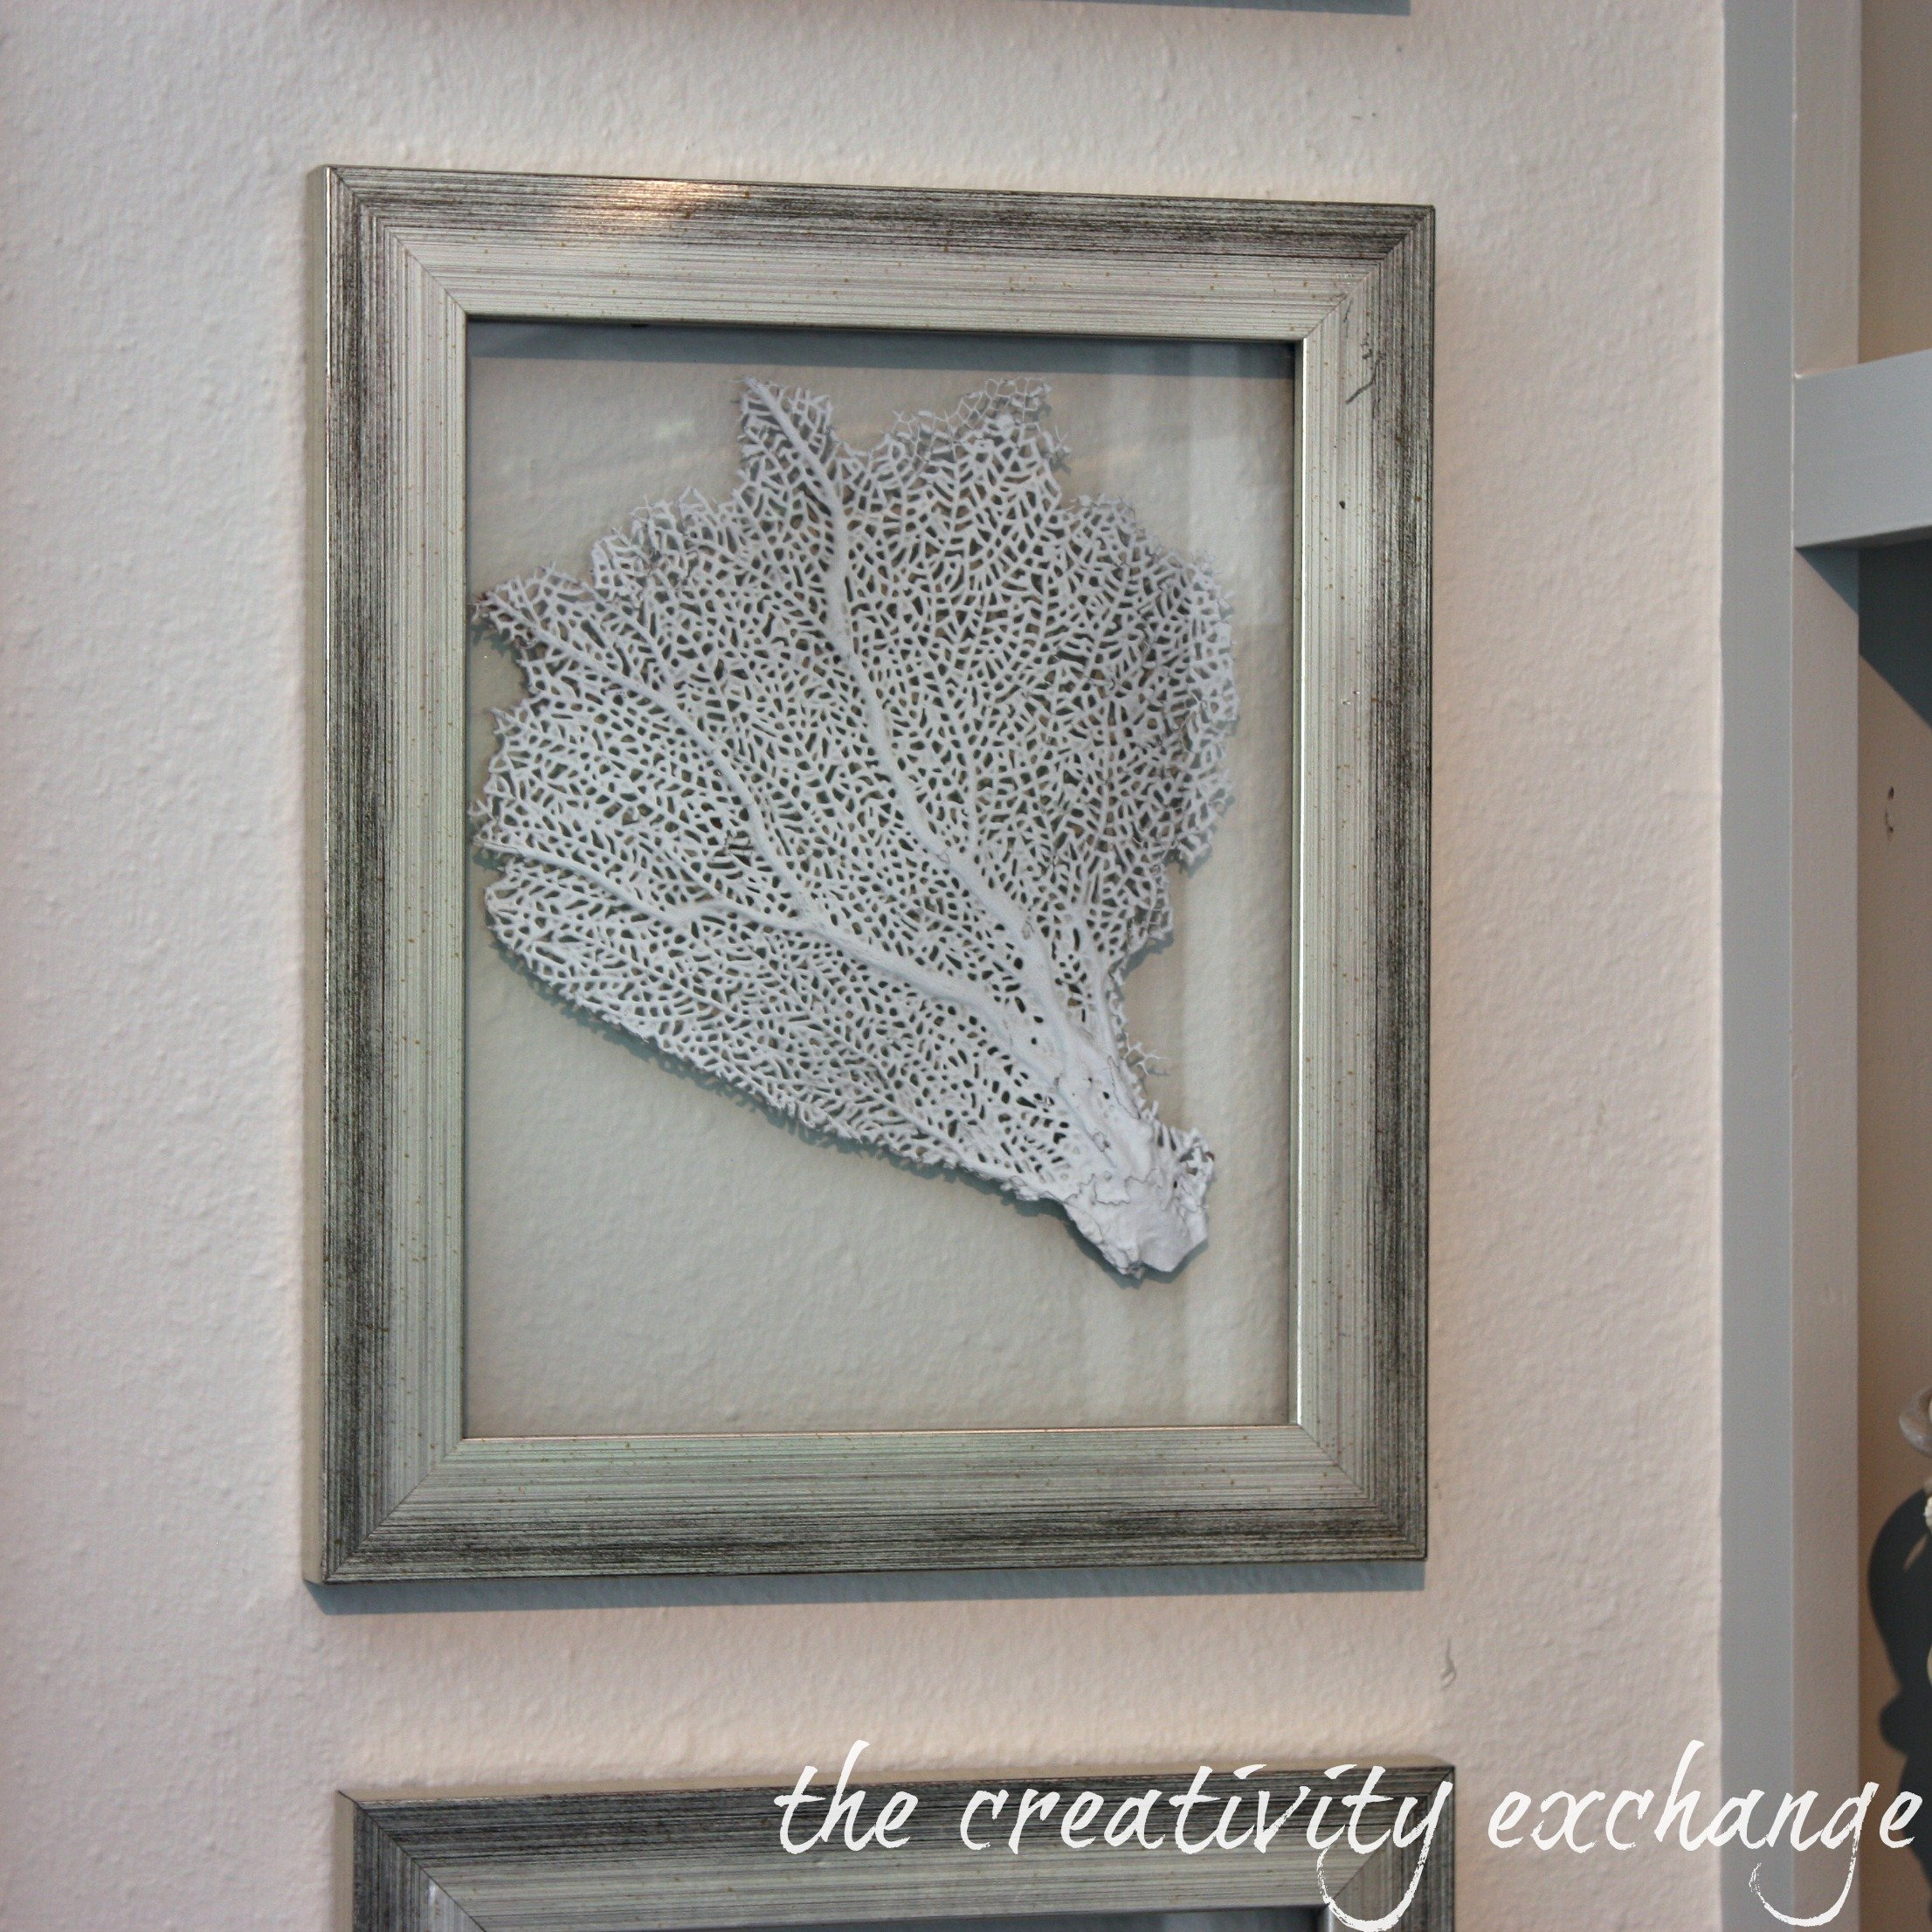 diy double sided glass frames for framing shells and sea fans the creativity exchange - Double Glass Frame